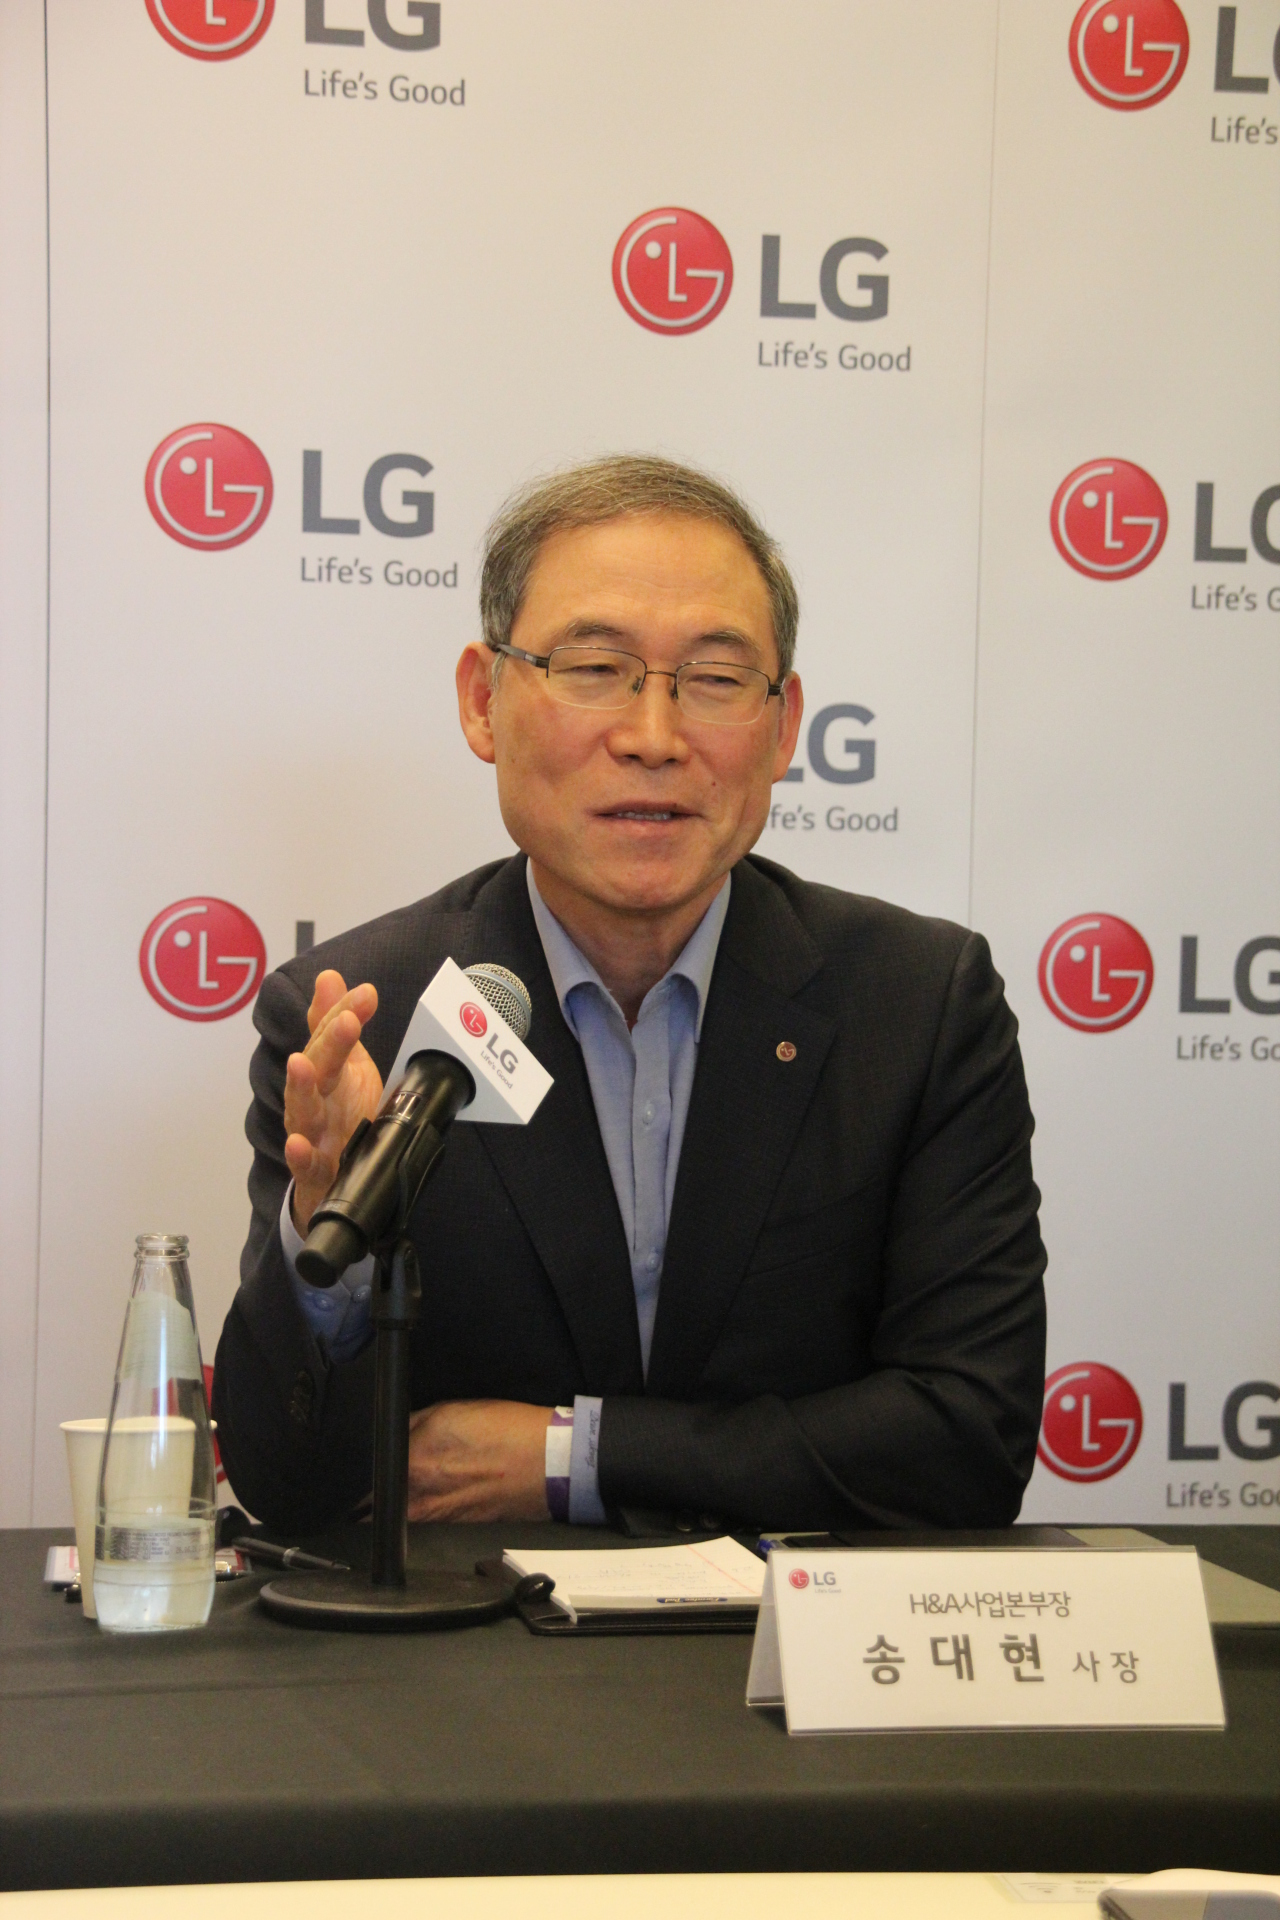 Song Dae-hyun, president of LG Electronics' home appliance and air solution division, speaks during a press briefing in Berlin on Saturday. (Lim Jeong-yeo/The Korea Herald)